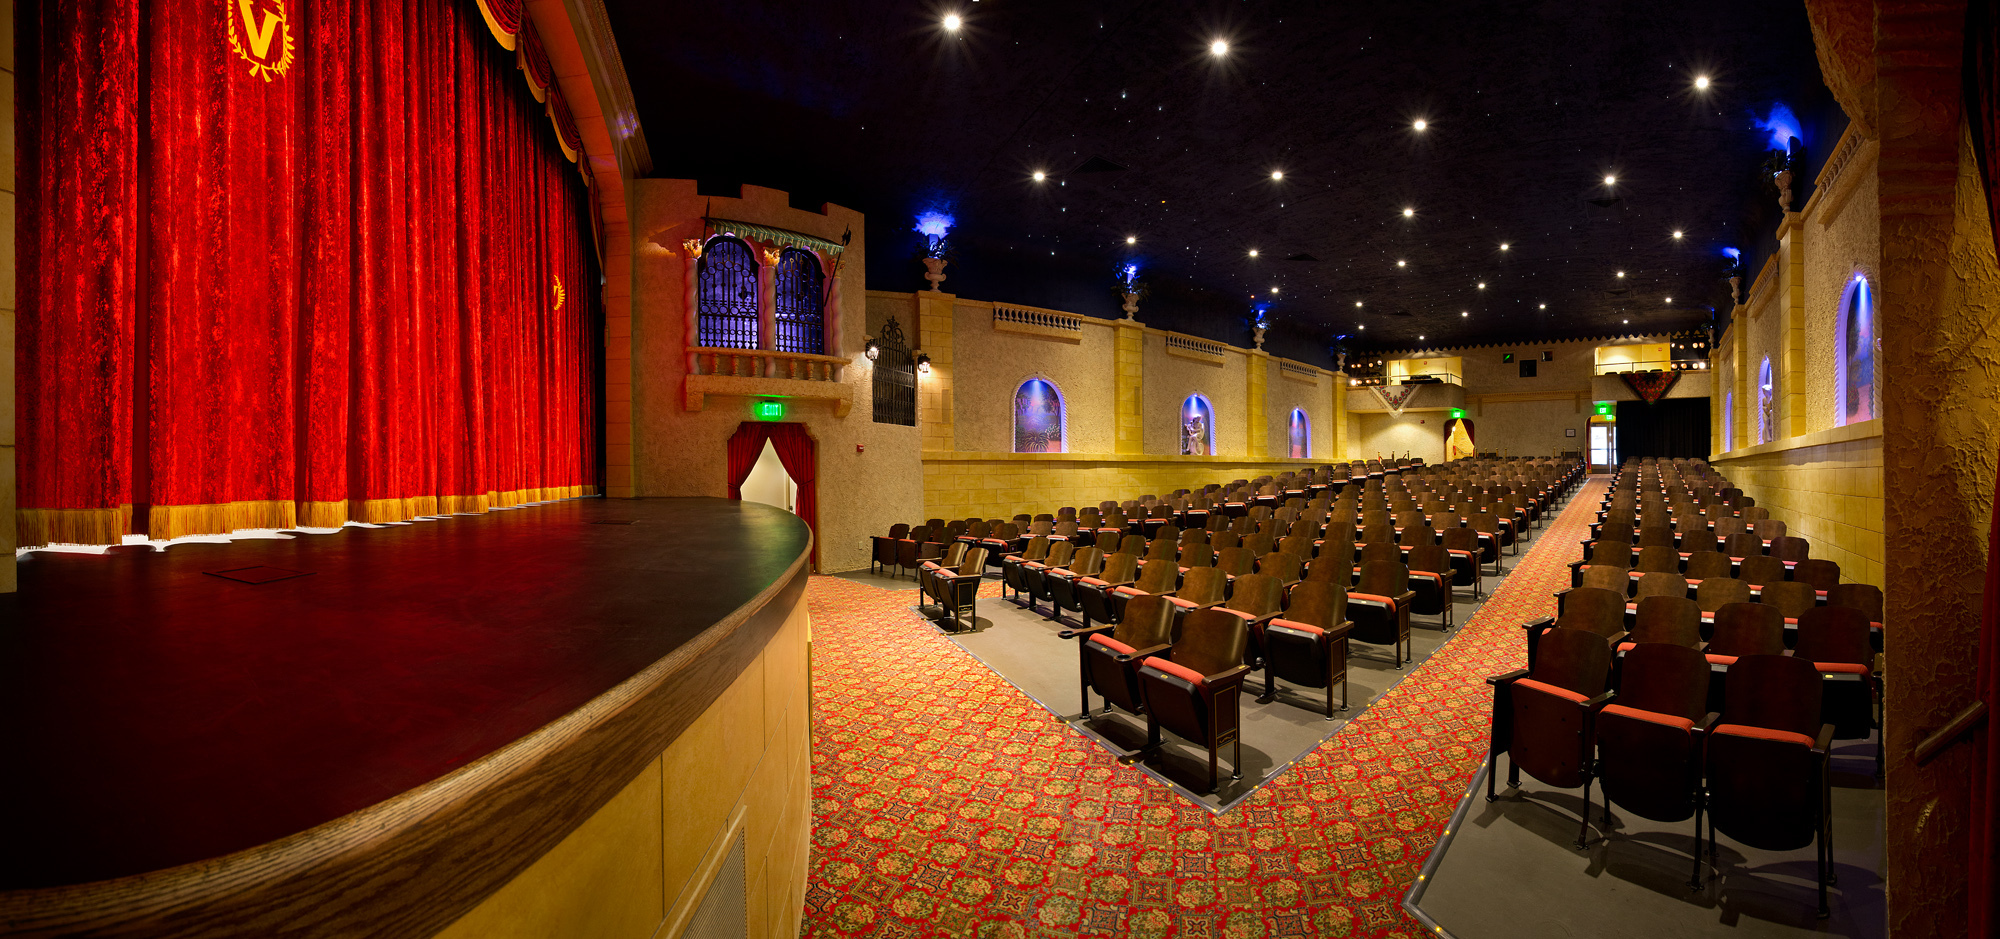 Last April, Cook Group Incorporated committed to sponsor the renovation of the Tivoli Theatre, which is owned by Owen County Preservations. This weekend, less than a year after renovations began, the Tivoli Theatre will screen its first feature films in 14 years to the community. (Photo: Business Wire)